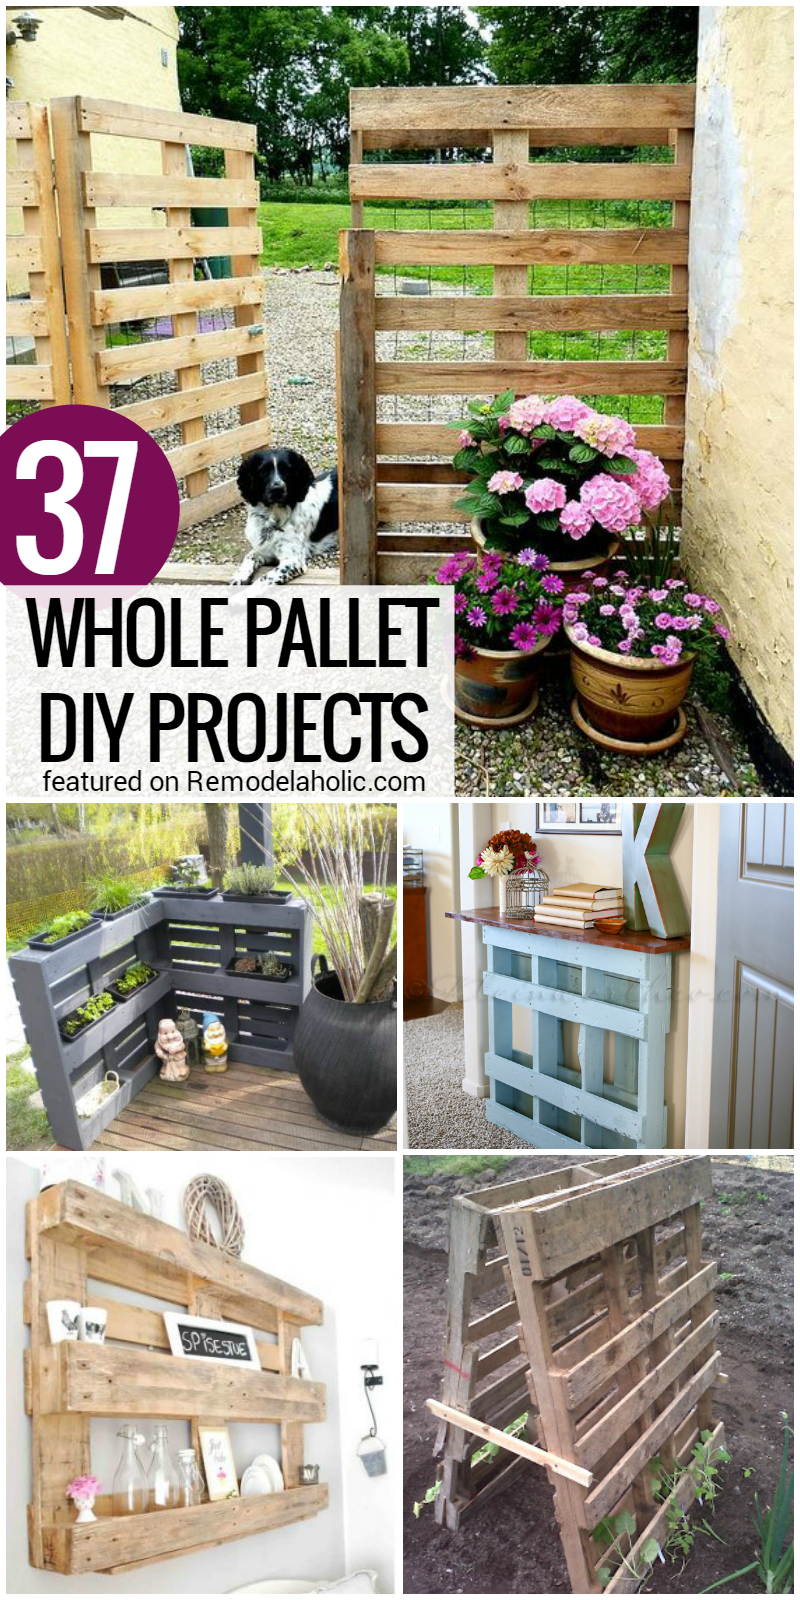 37-whole-pallet-projects-no-disembly-required-@Remodelaholic Pallet Playhouse Plans Design on pallet swings plans, pallet furniture ideas, pallet lamp plans, pallet wood, pallet sandbox plans, pallet storage plans, pallet kitchen plans, pallet boat plans, pallet bench plans, pallet wine rack ideas, pallet building plans, pallet house, shed plans, pallet projects, pallet shelter plans, indoor loft plans, pallet gazebo plans, pallet shed, pallet workshop plans, pallet pool plans,